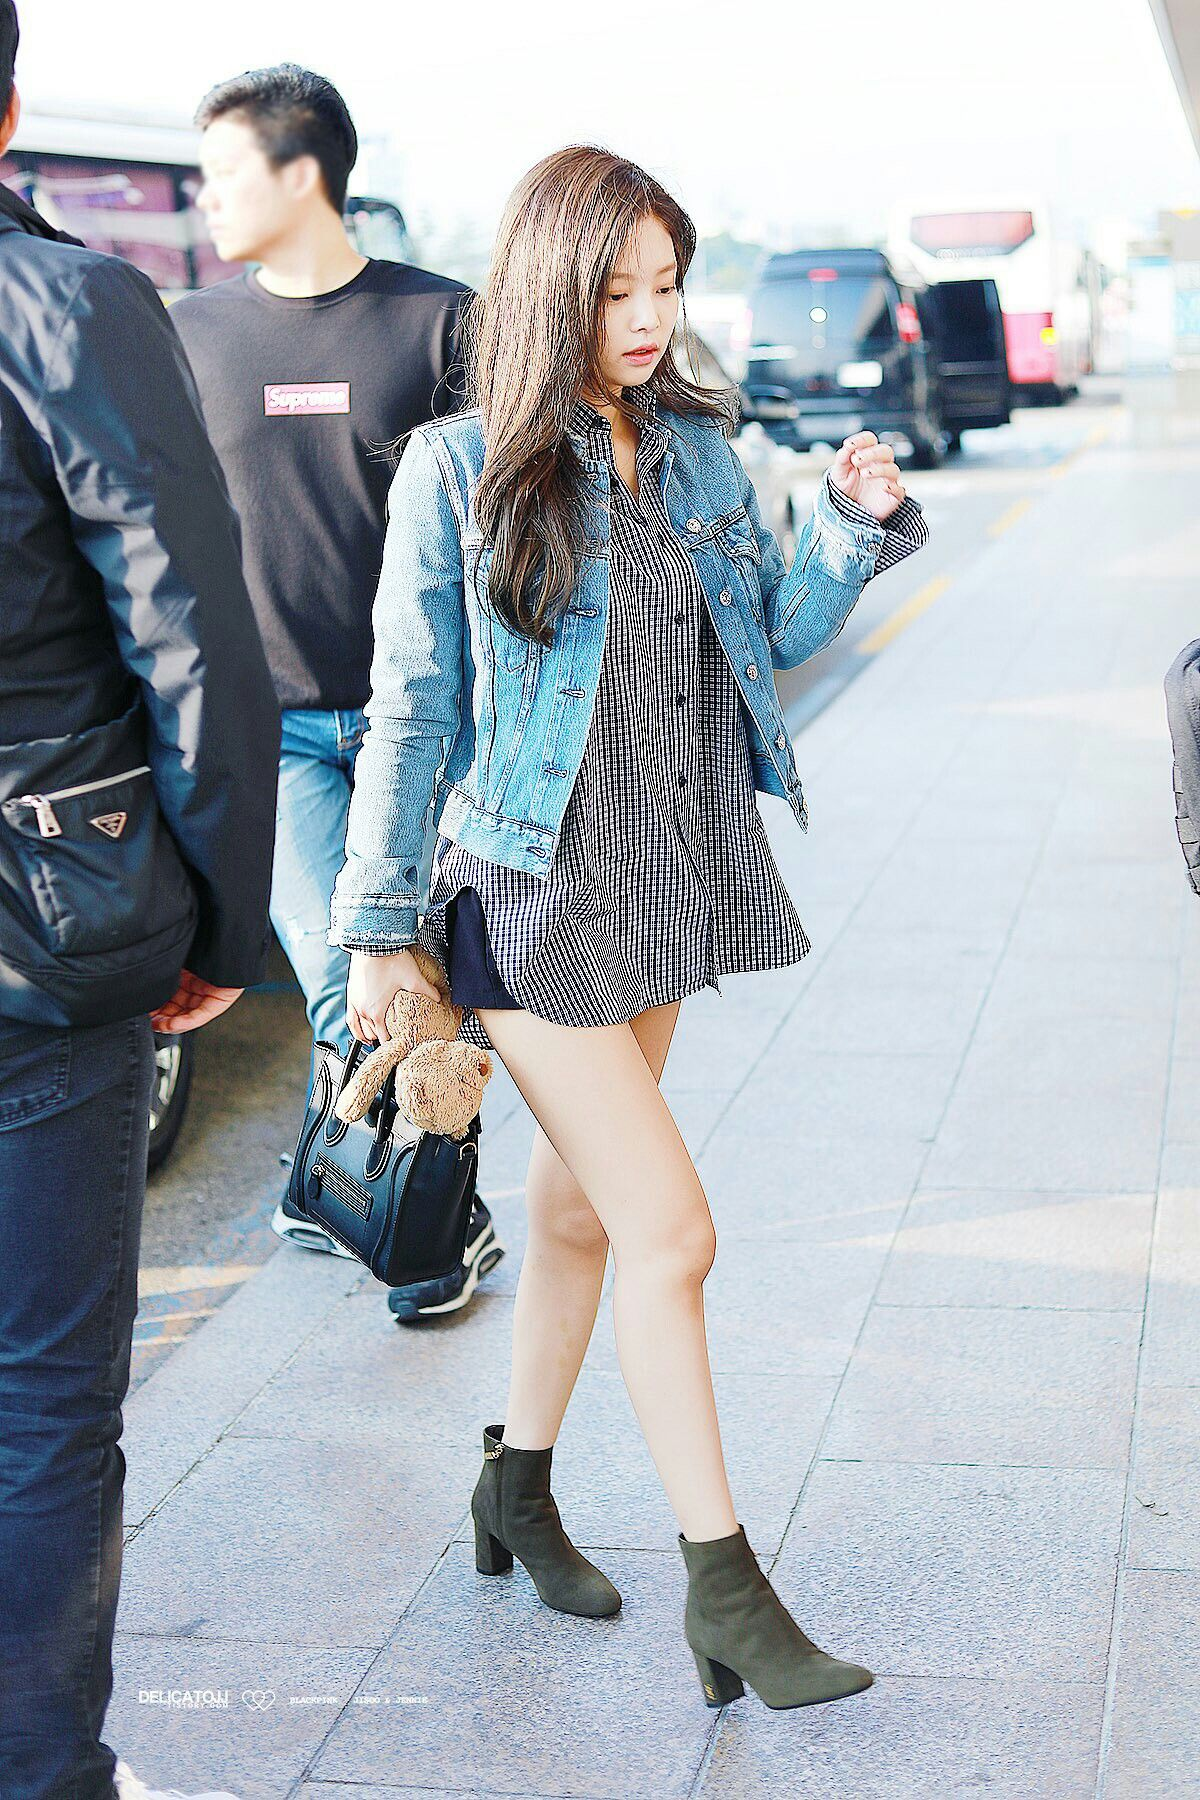 Jennie / BLACKPINK Airport